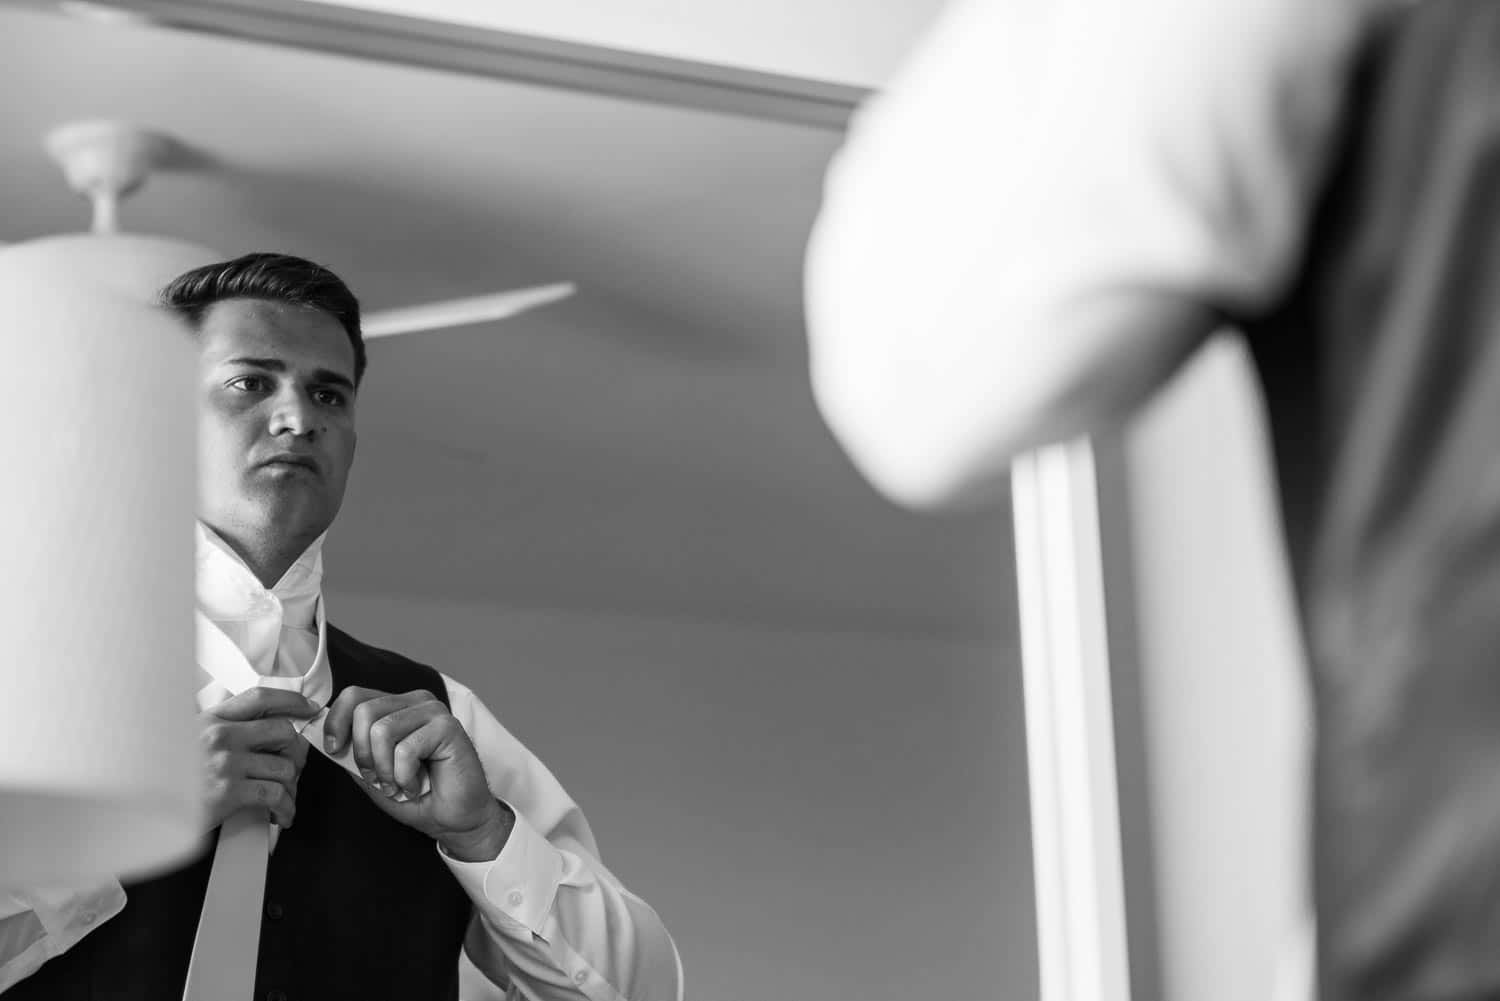 Groom fixing his tie before the wedding BW